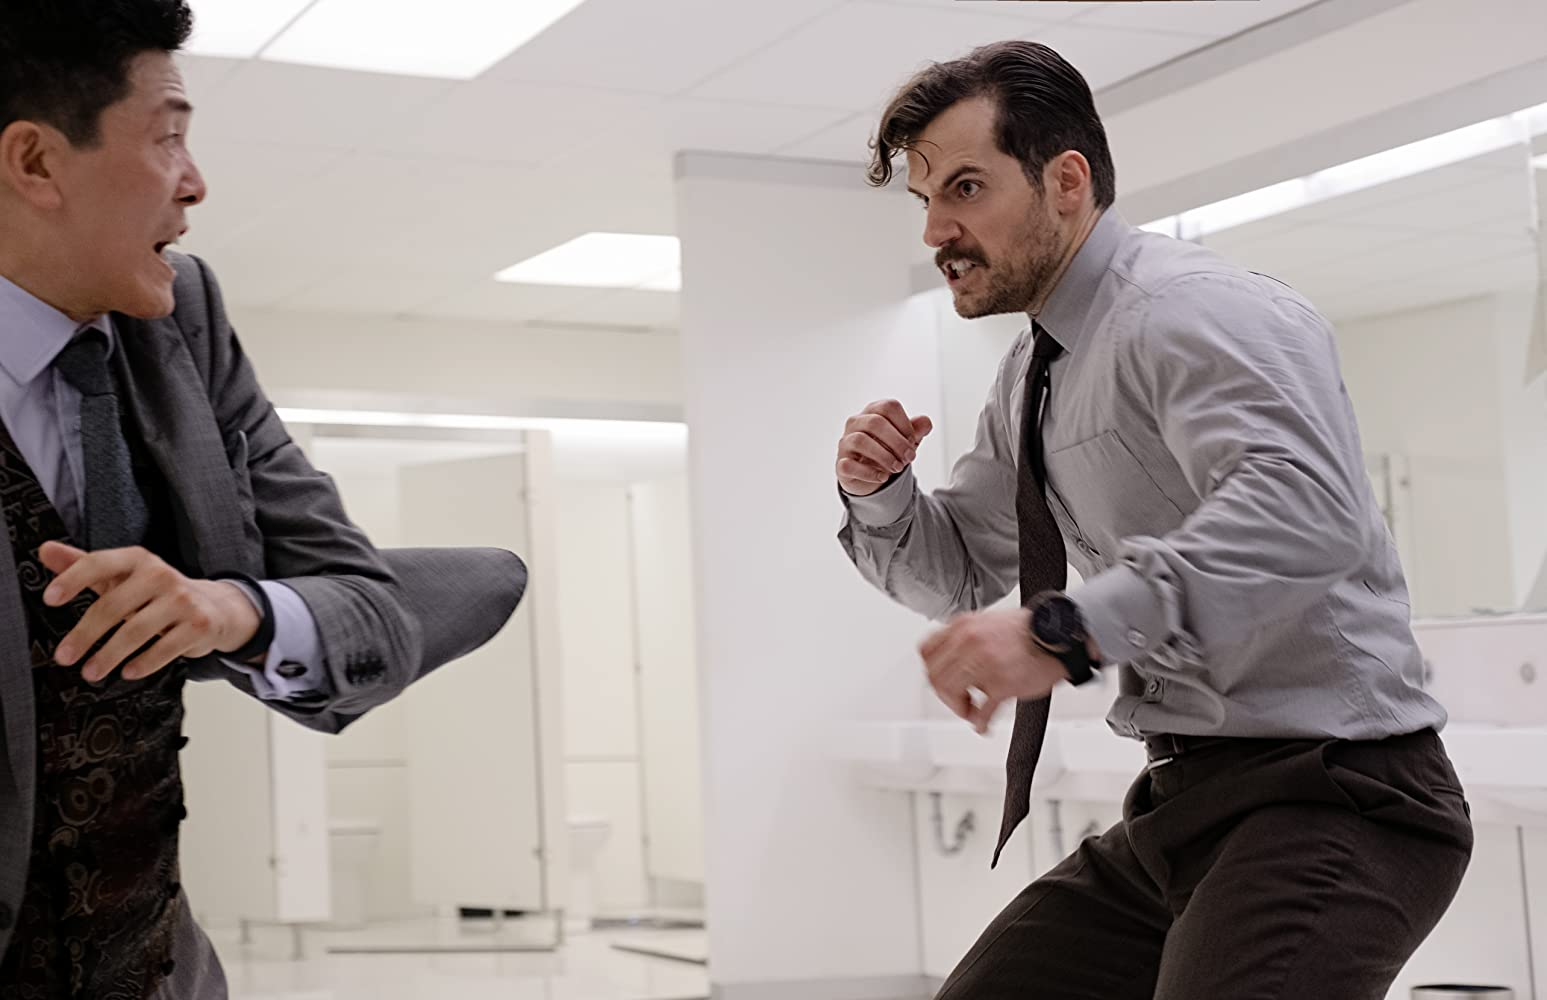 Henry Cavill and Liang Yang in Mission: Impossible - Fallout (2018) missão impossível efeito fallout crítica